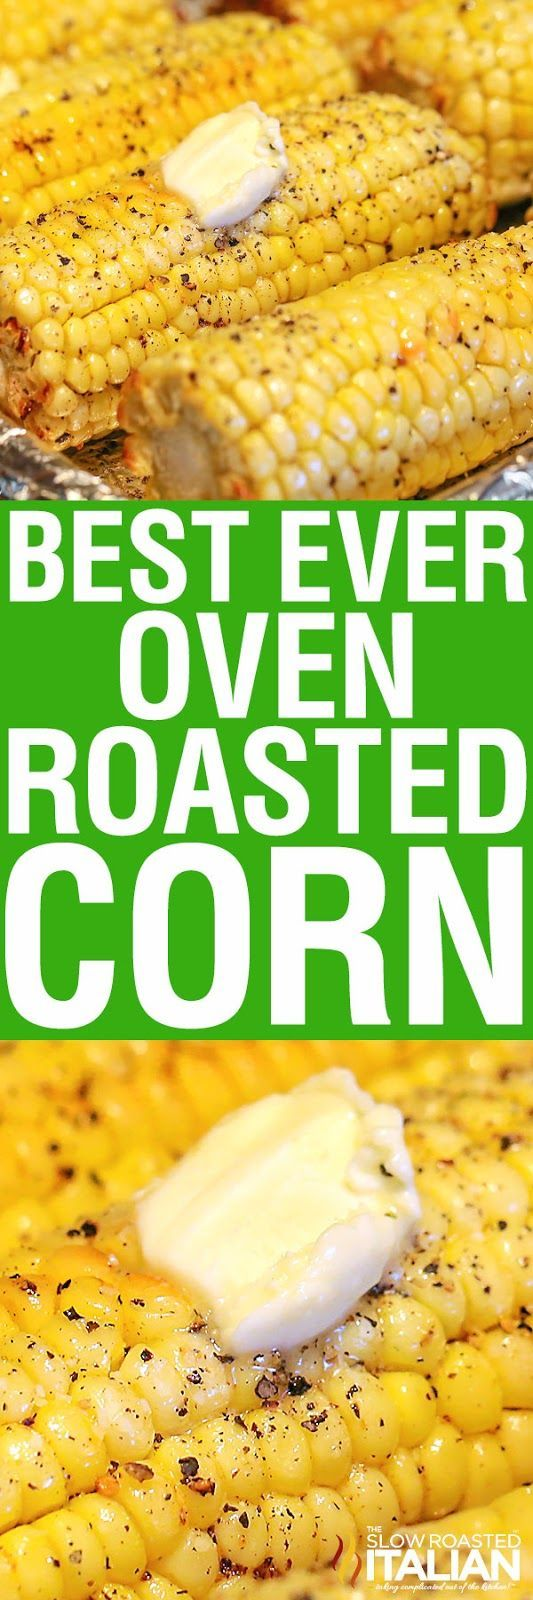 The Best Ever Oven Roasted Corn is prepped and ready to go in the oven in just 10 minutes. This recipe is so simple you will be making it all year long!